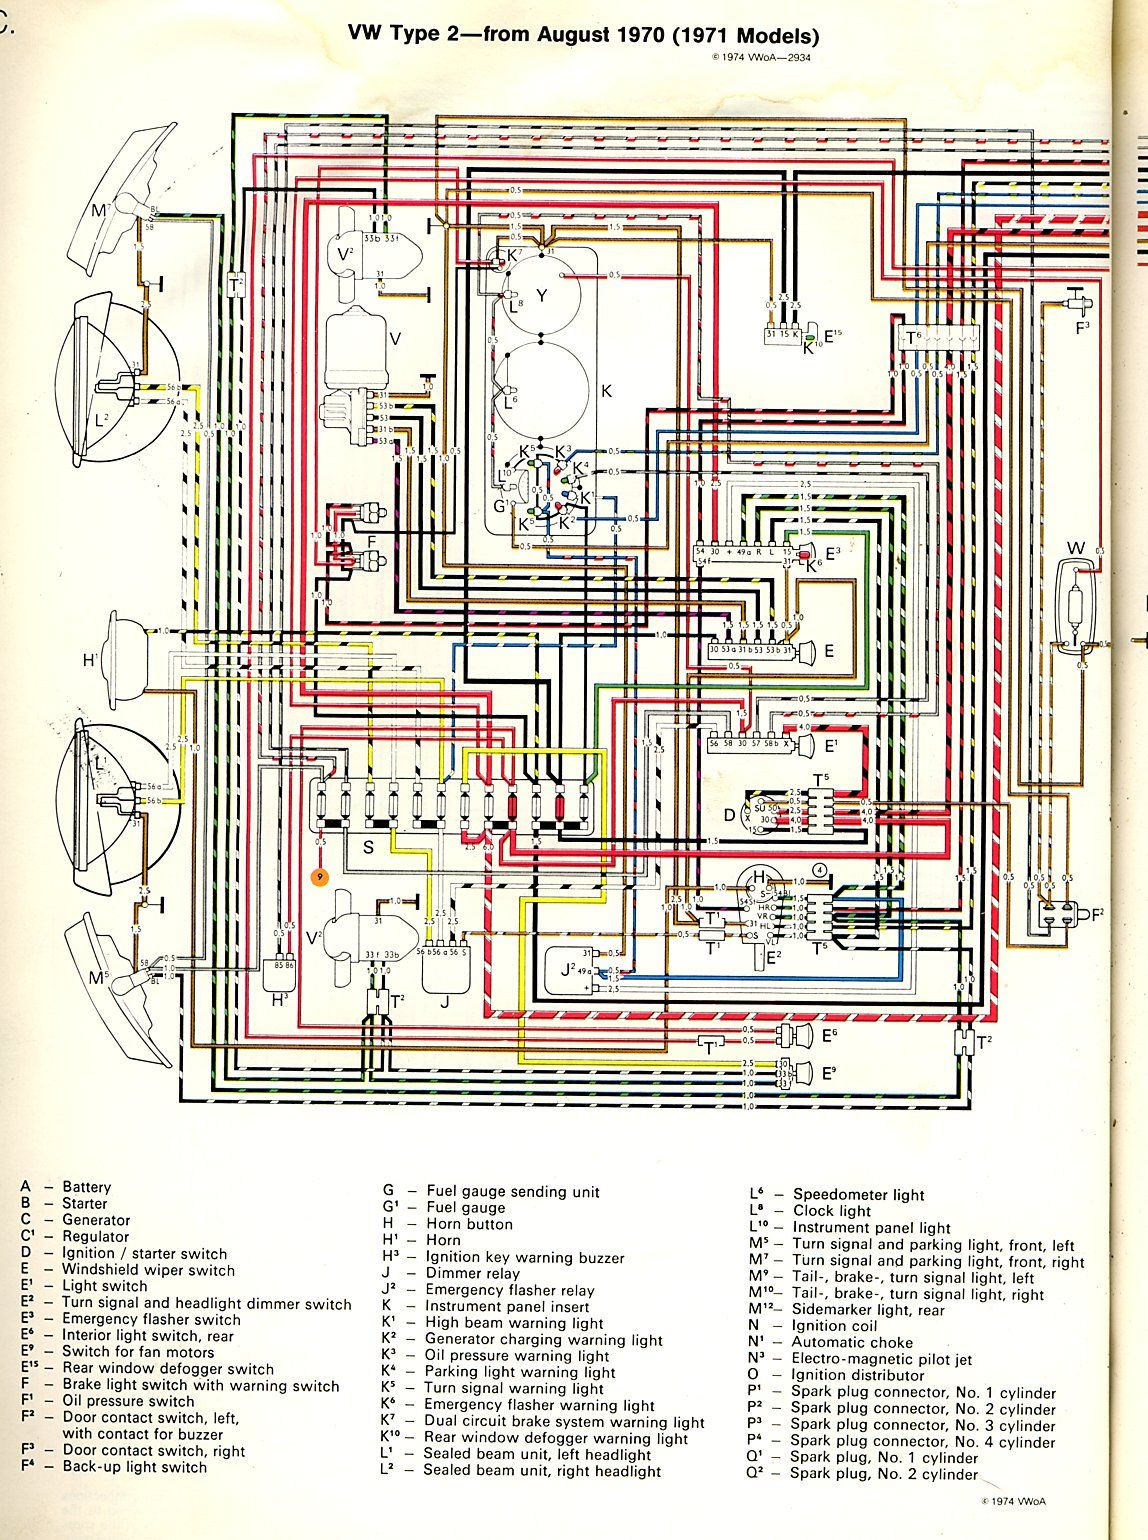 1971 Bus Wiring Diagram Electrical Wiring Diagram Vw Bus Diagram